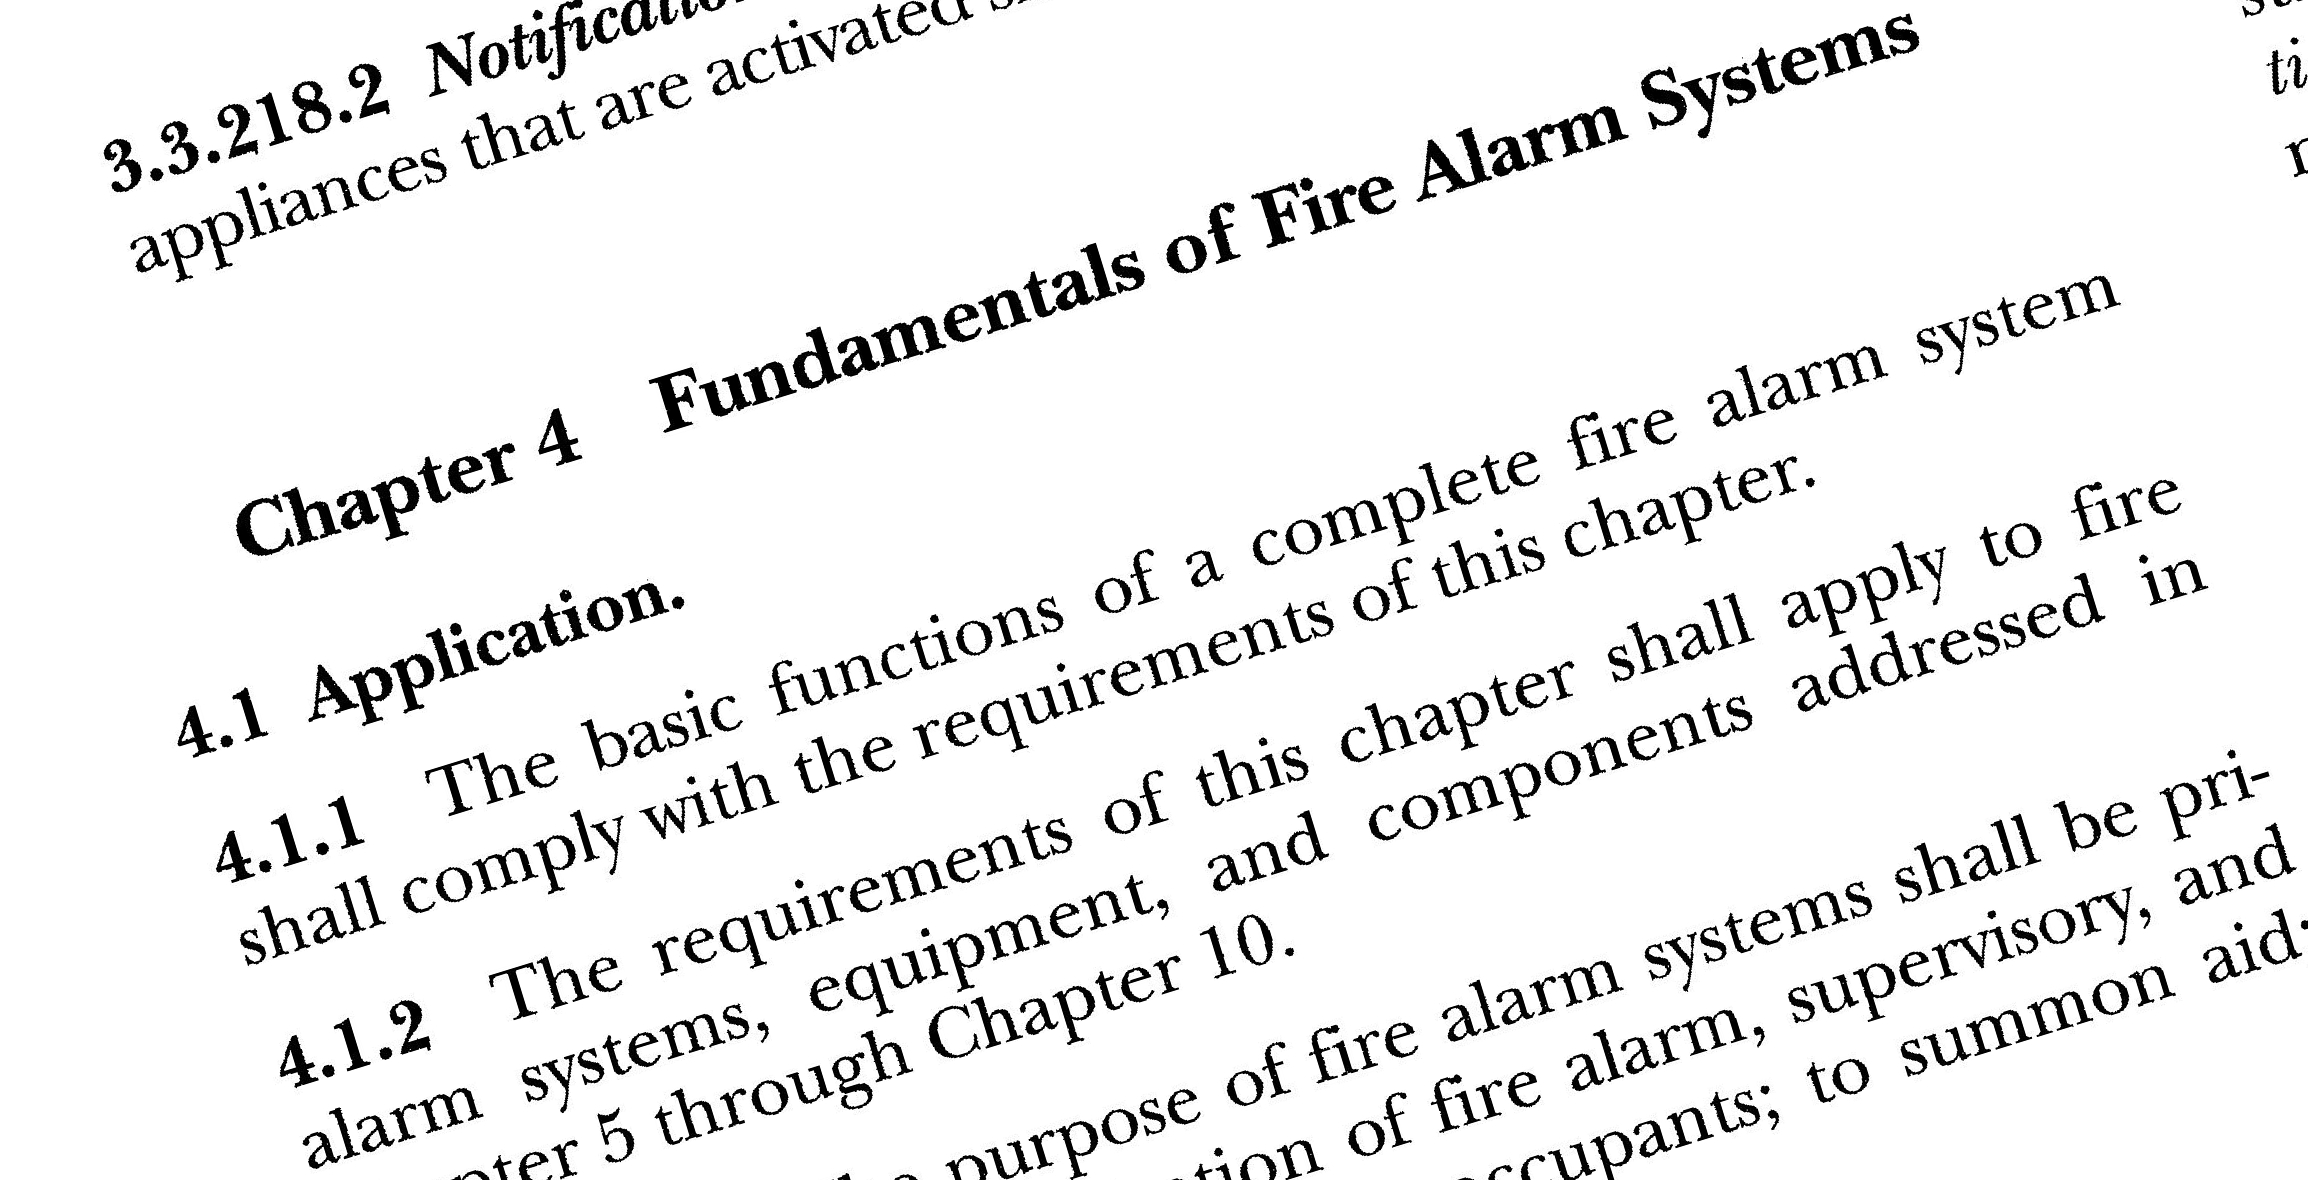 NFPA 72 - Chapter 4 Fundamentals of fire alarm systems